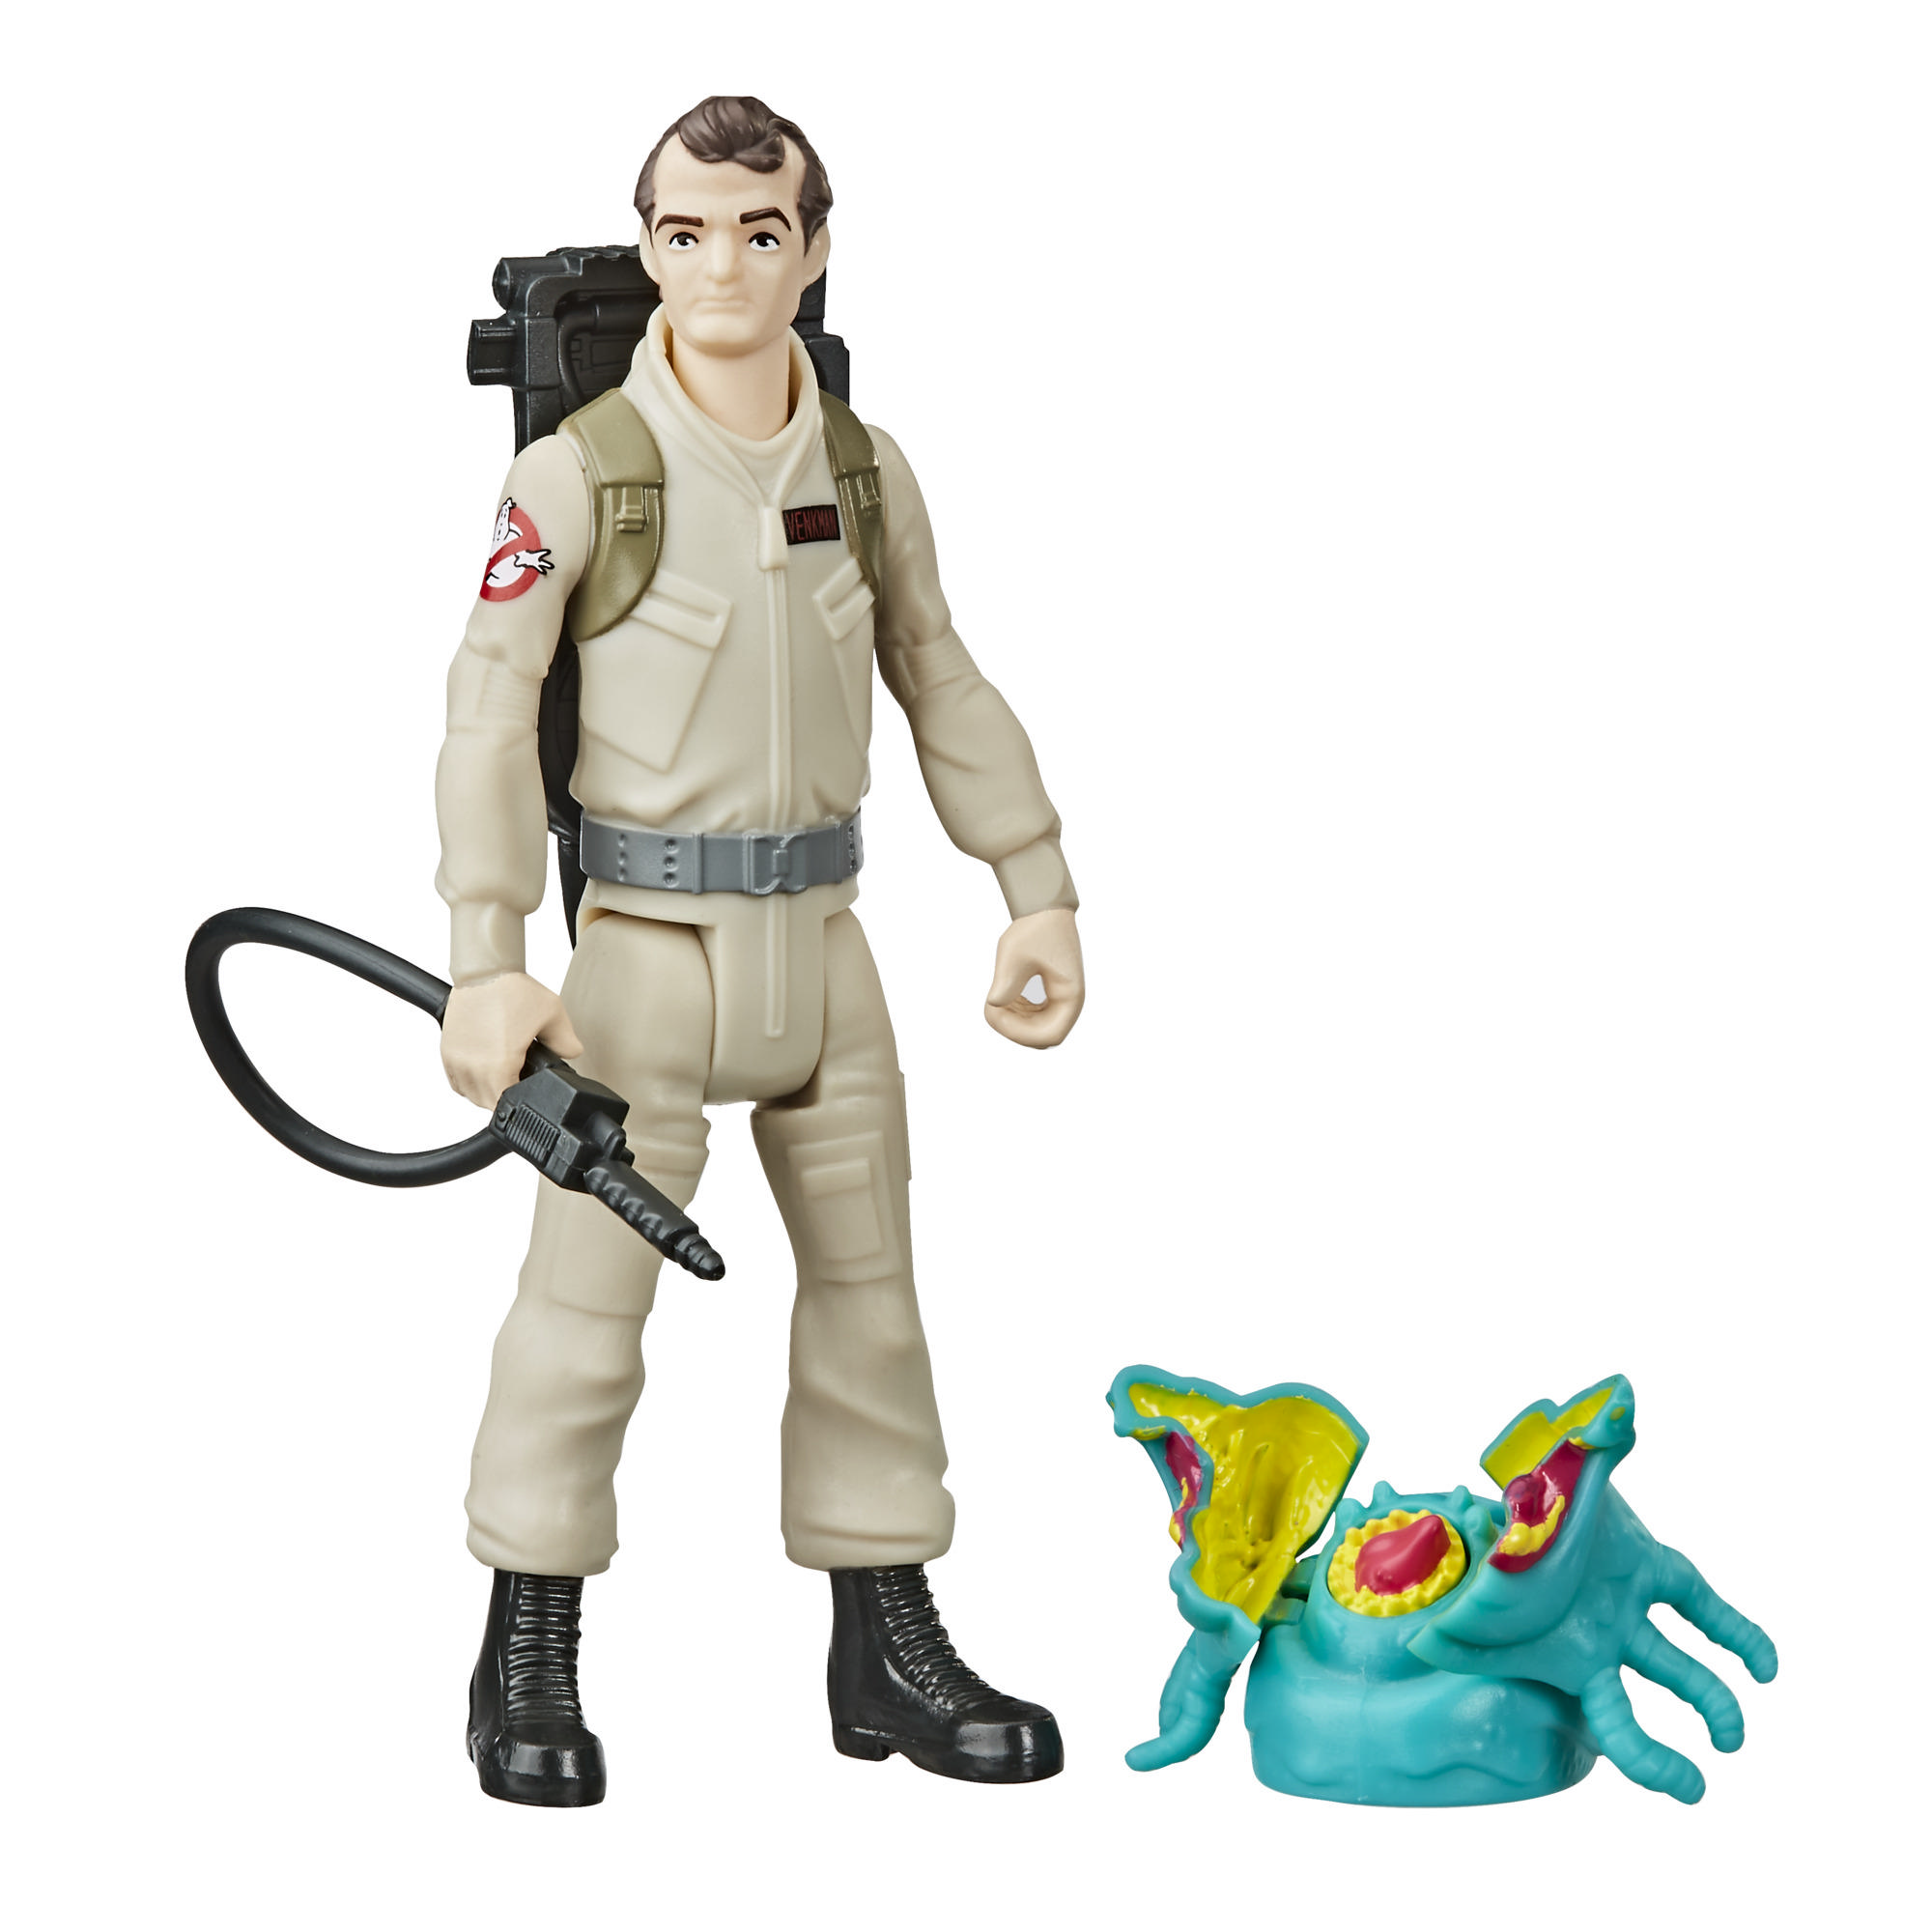 Ghostbusters Fright Features Peter Venkman Figure with Interactive Ghost Figure and Accessory for Kids Ages 4 and Up